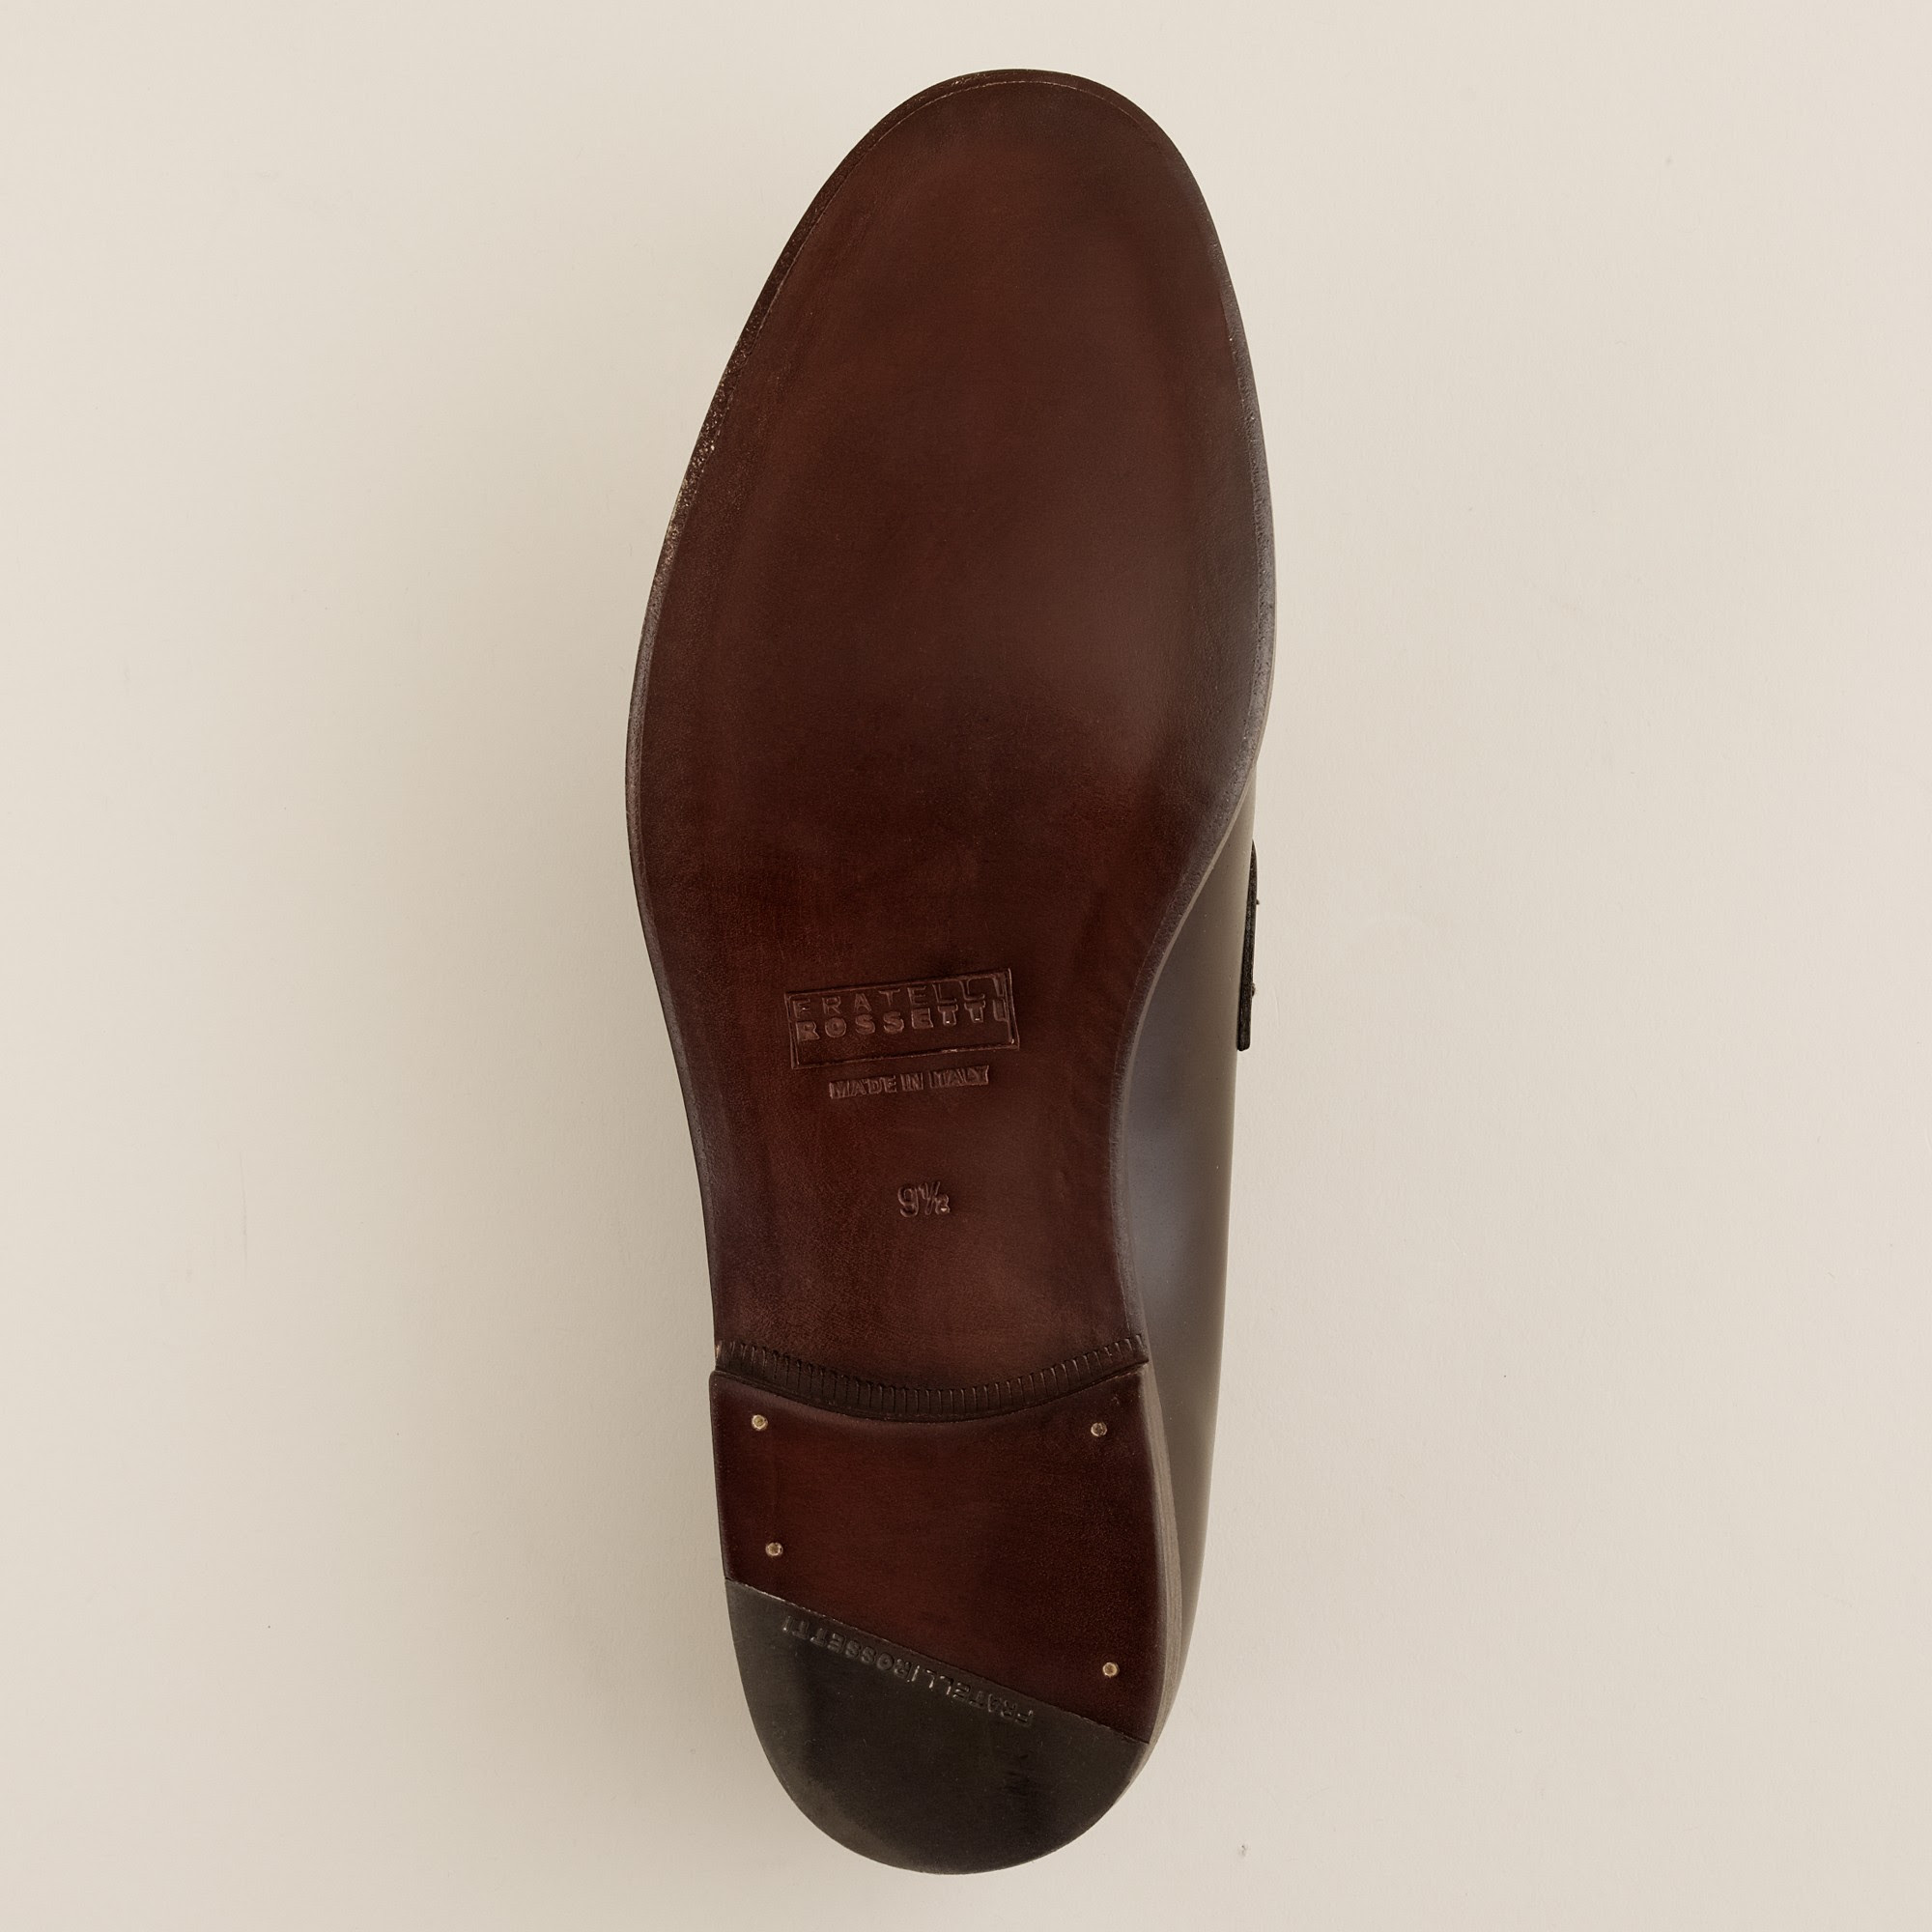 J.crew Fratelli Rossetti S.p.a. Dexter Penny Loafers in ...